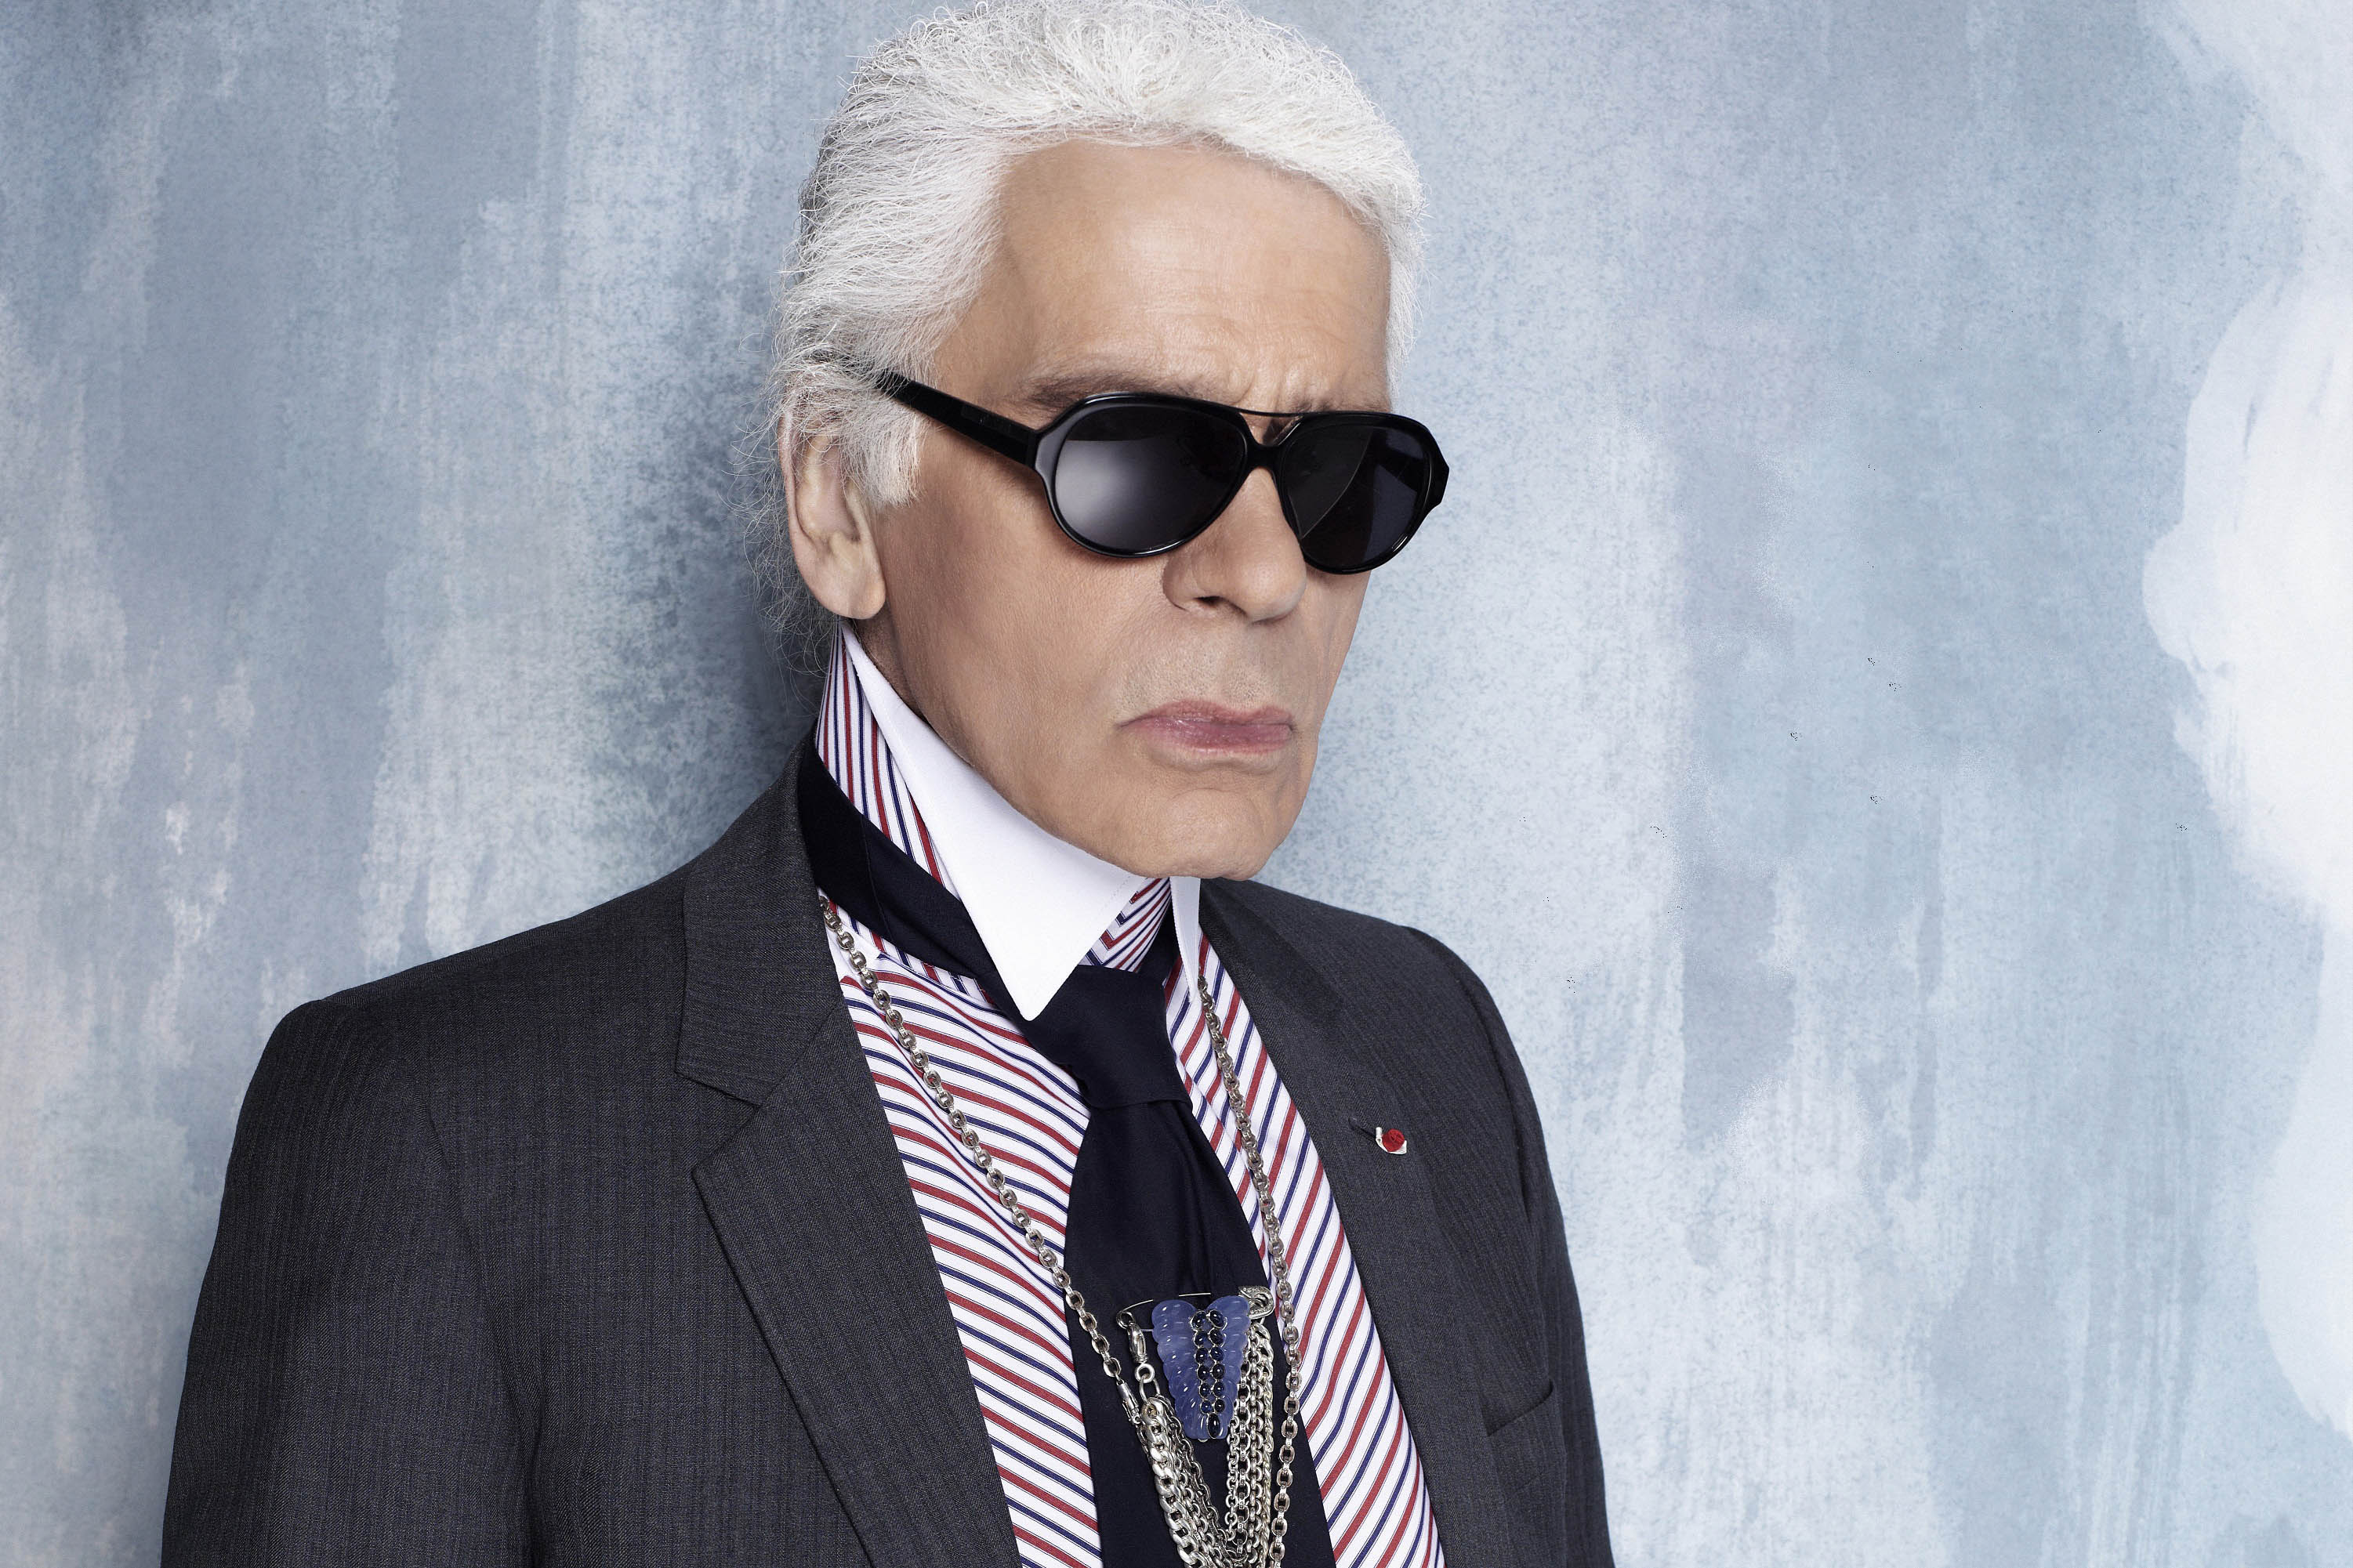 Lagerfeld | All the action from the casino floor: news, views and more